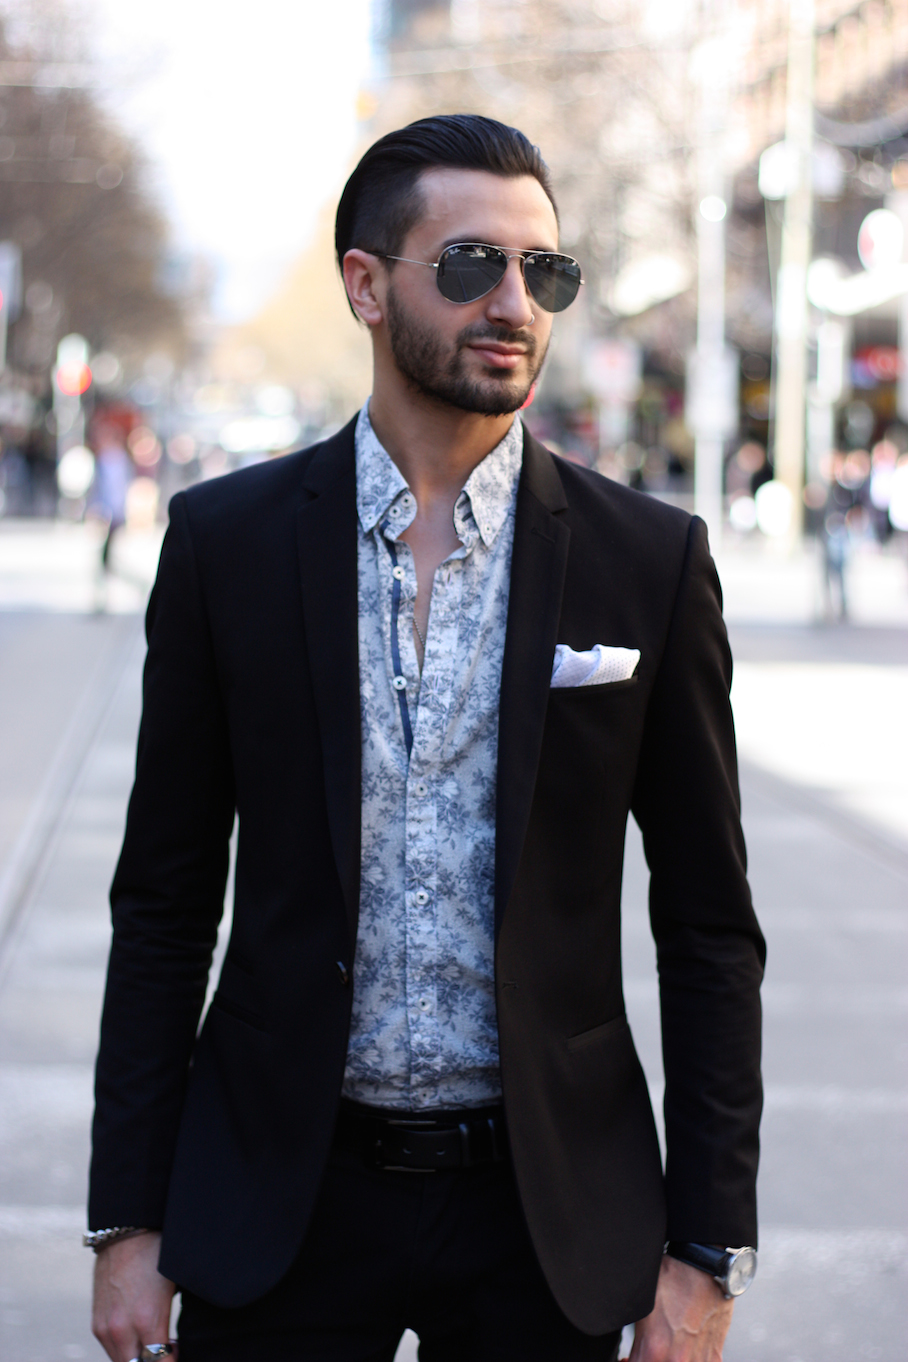 """Vic: Nicolas Clavero, Sales Rep, Bourke St Mall. """"My style is work attire on the go."""" <a href=""""http://www.marythamphotography.weebly.com/"""" target=""""_blank""""> Photo: Mary Tham </a>"""